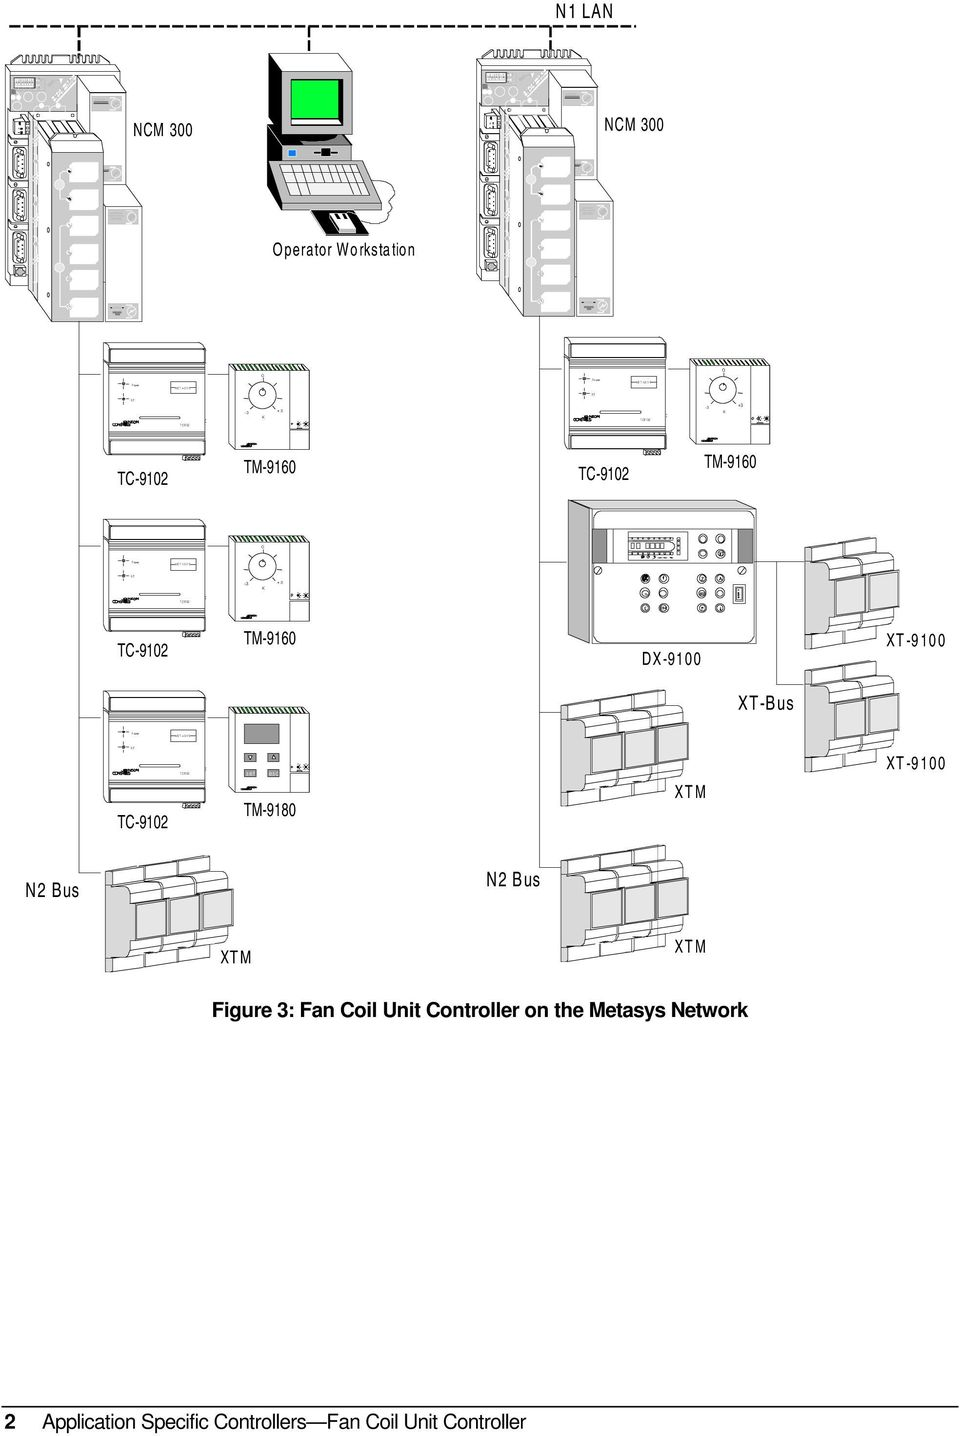 hight resolution of fan coil unit controller pdf 9102 metasys tc wiring diagram